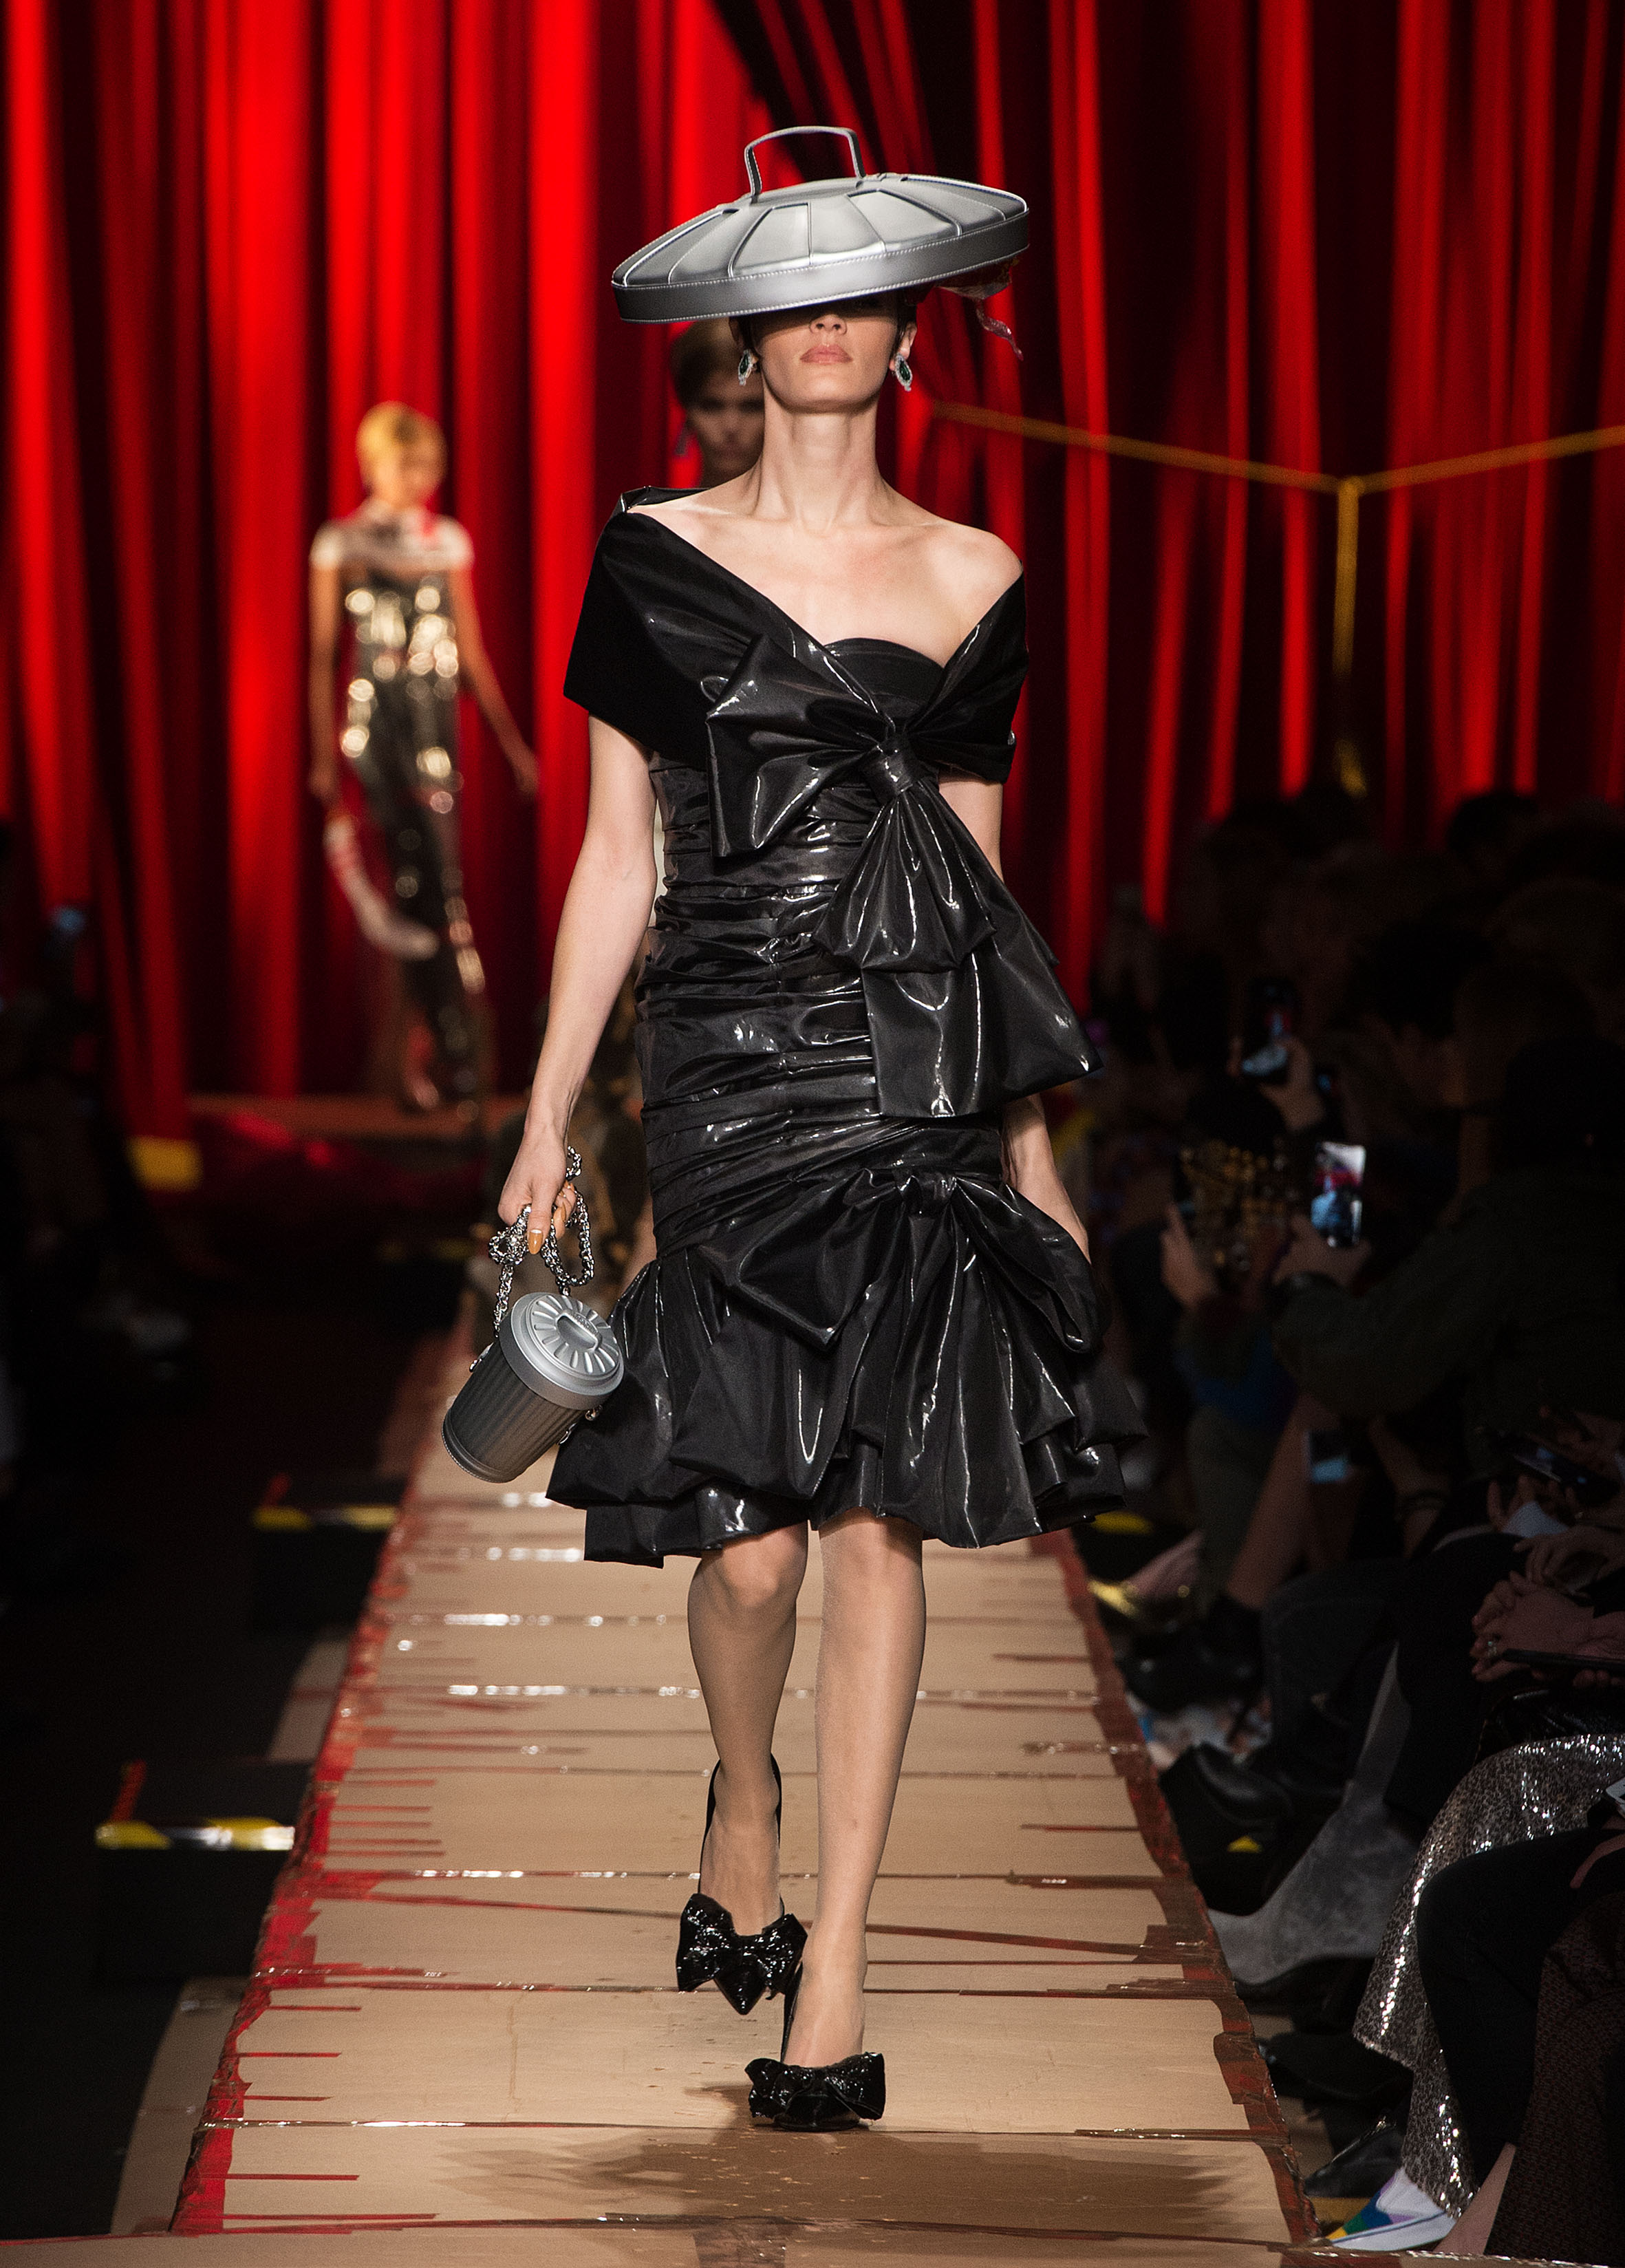 Moschino Fall Winter 2014 15 Women S Collection: Jeremy Scott's Material Girls For Moschino Fall/Winter